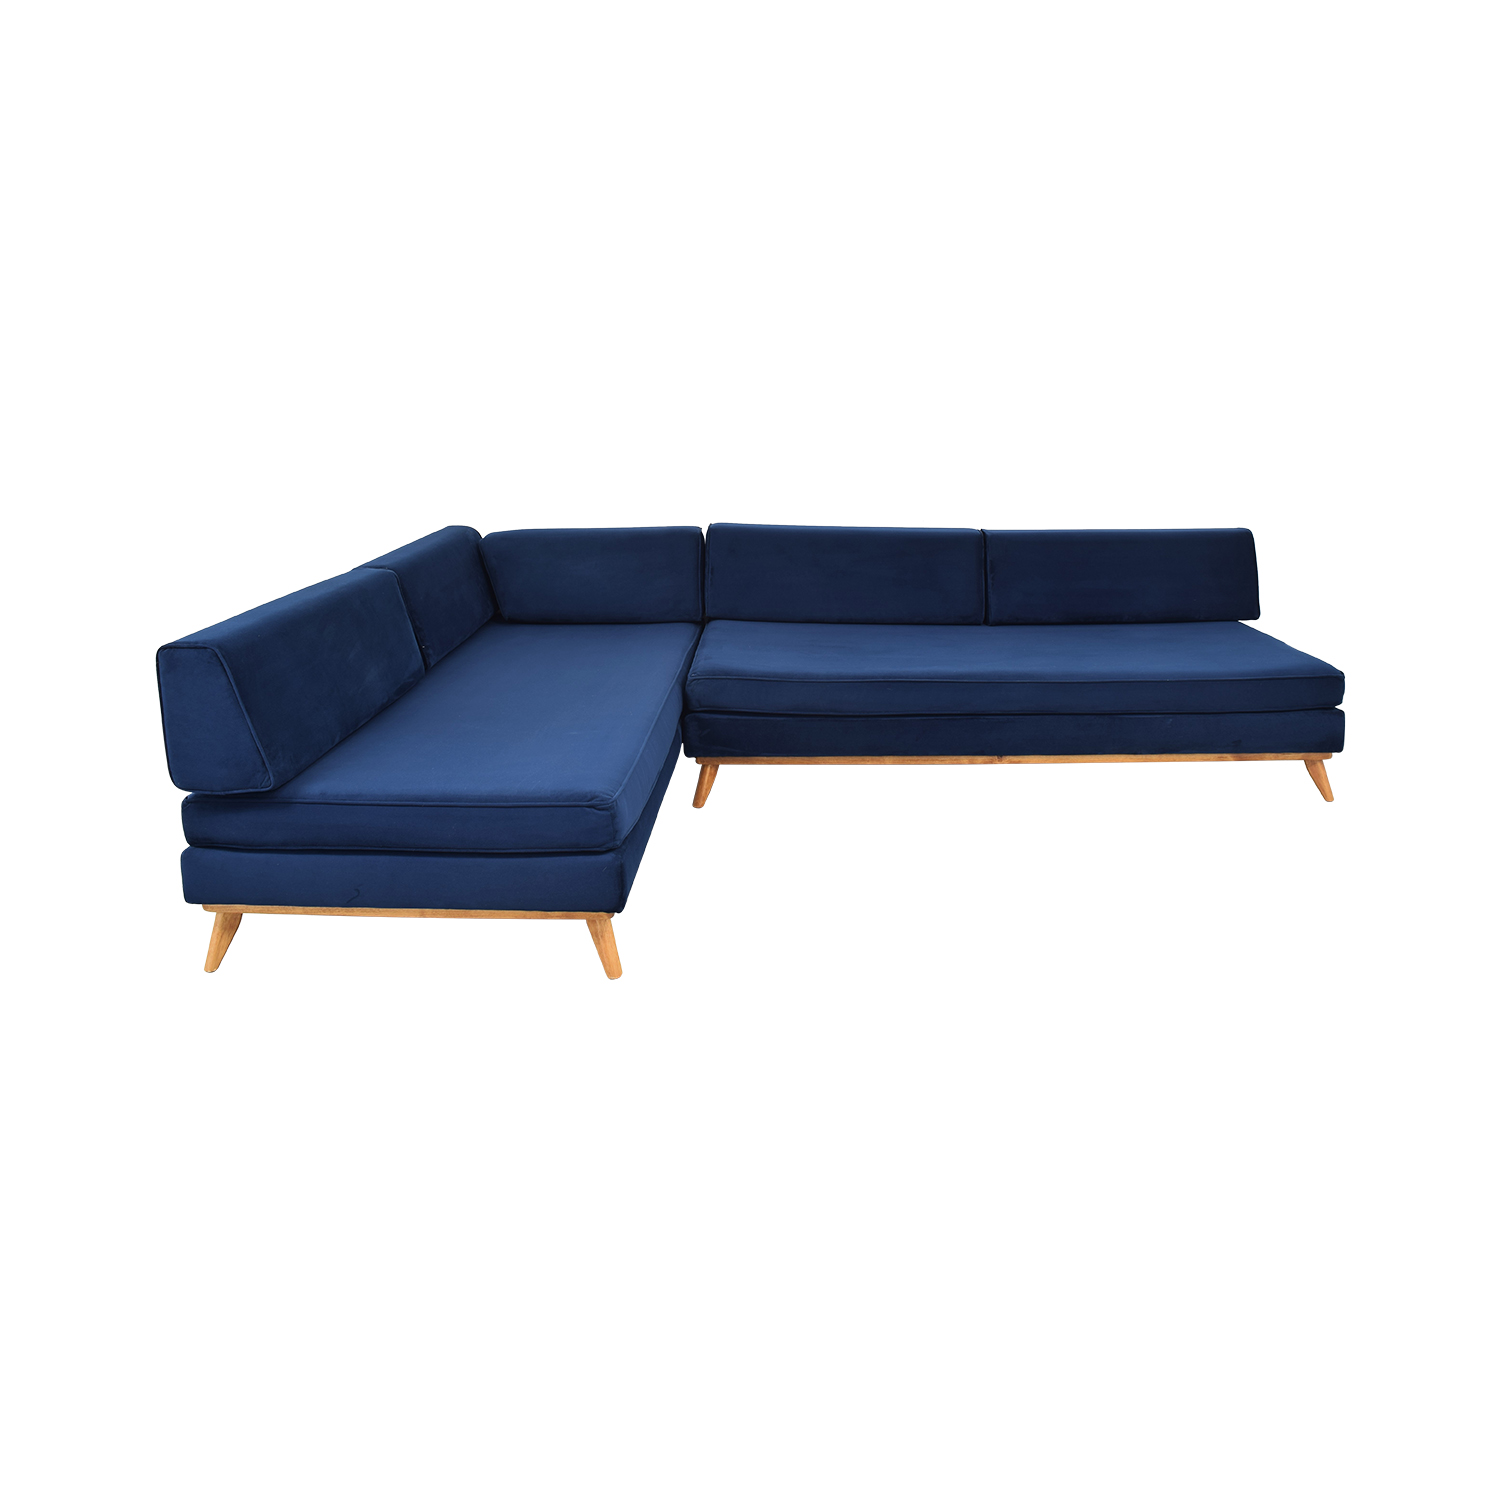 Total Design Furniture TDFurniture L-Shaped Sectional Convertible Day Bed for sale